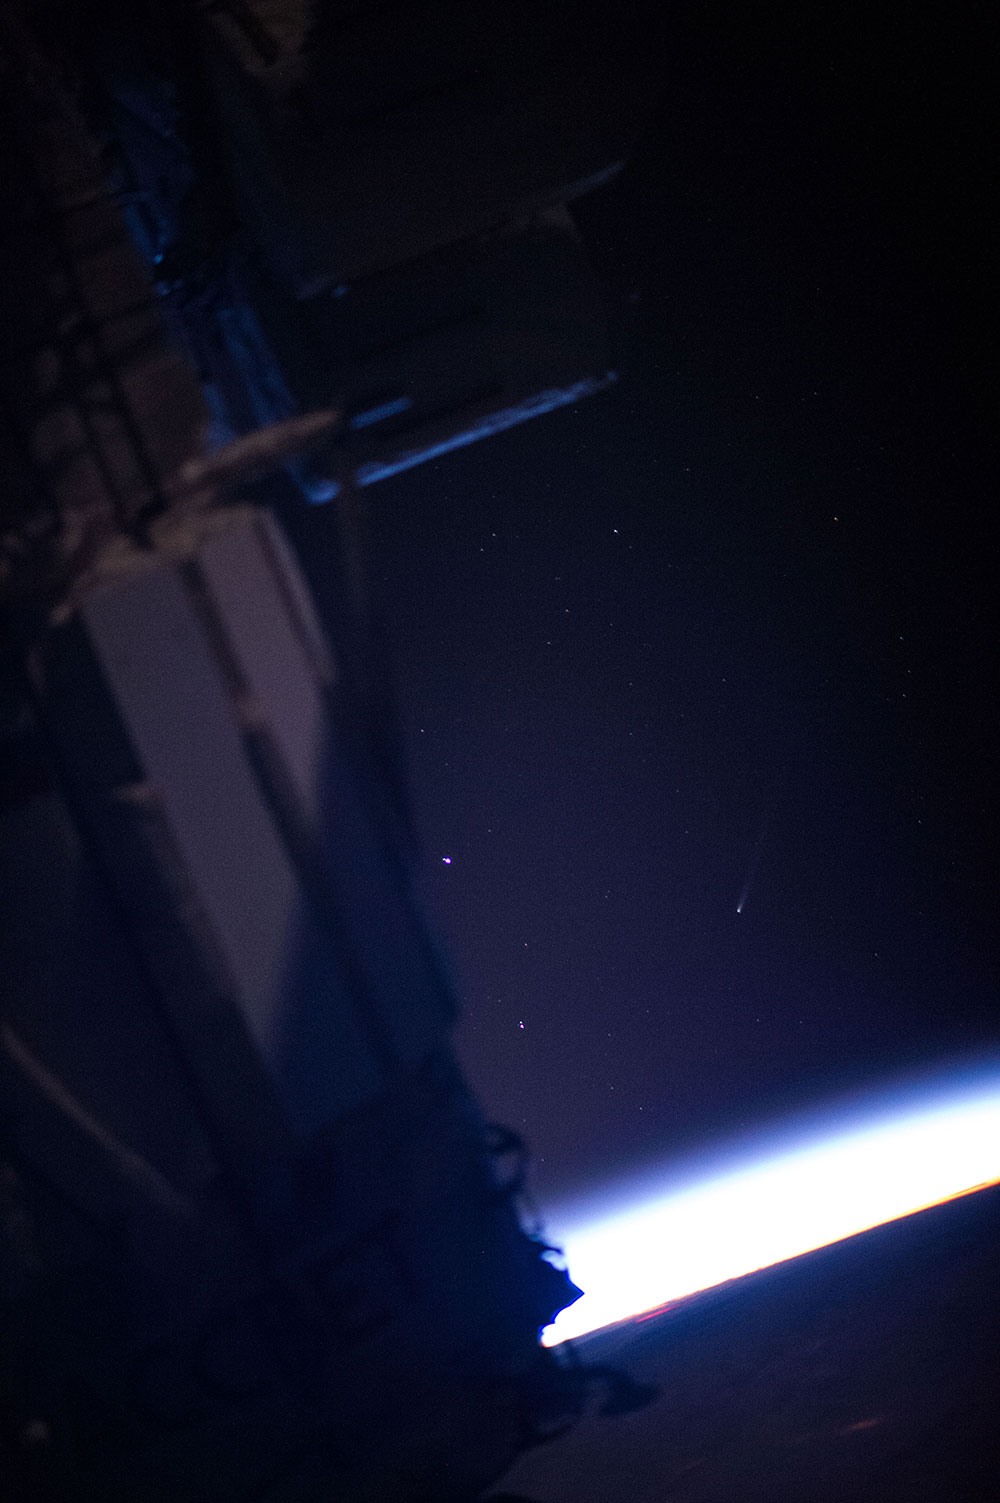 Comet ISON photographed by the crew aboard the International Space Station.